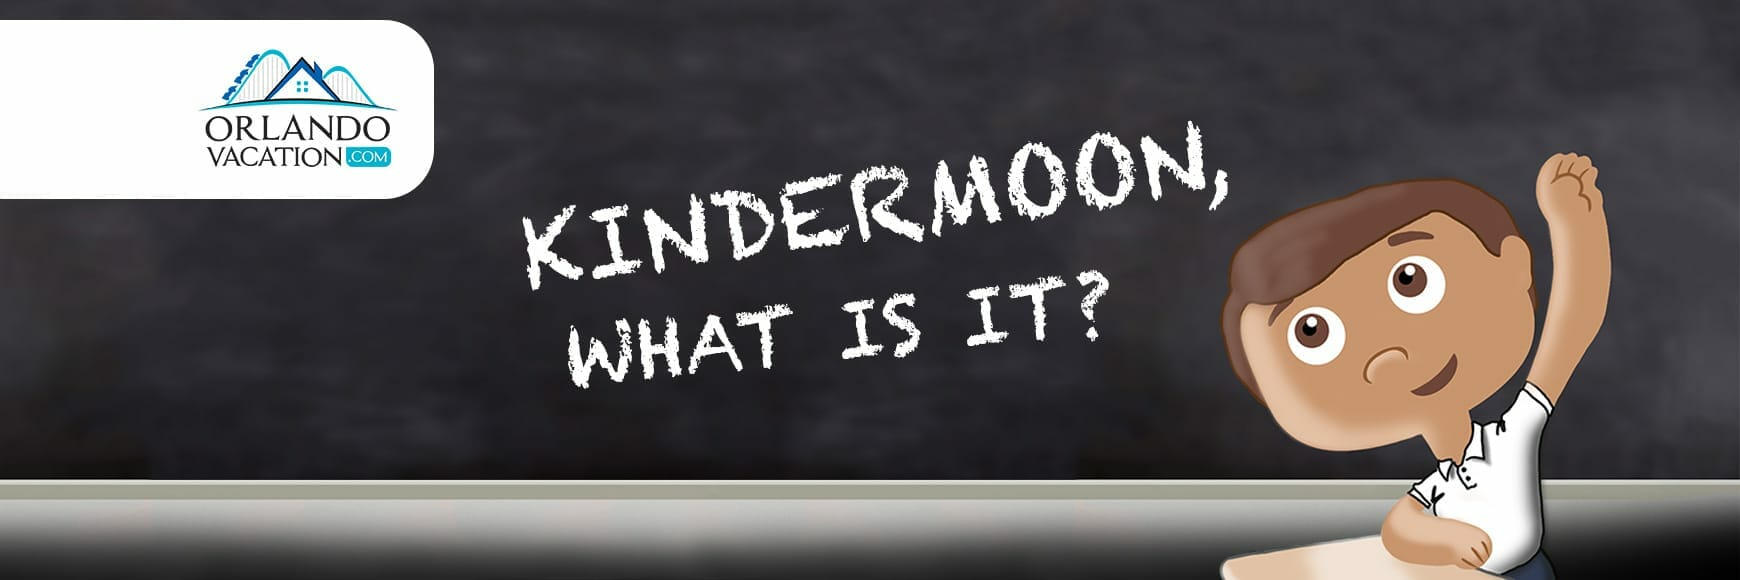 Kindermoon, What Is It?